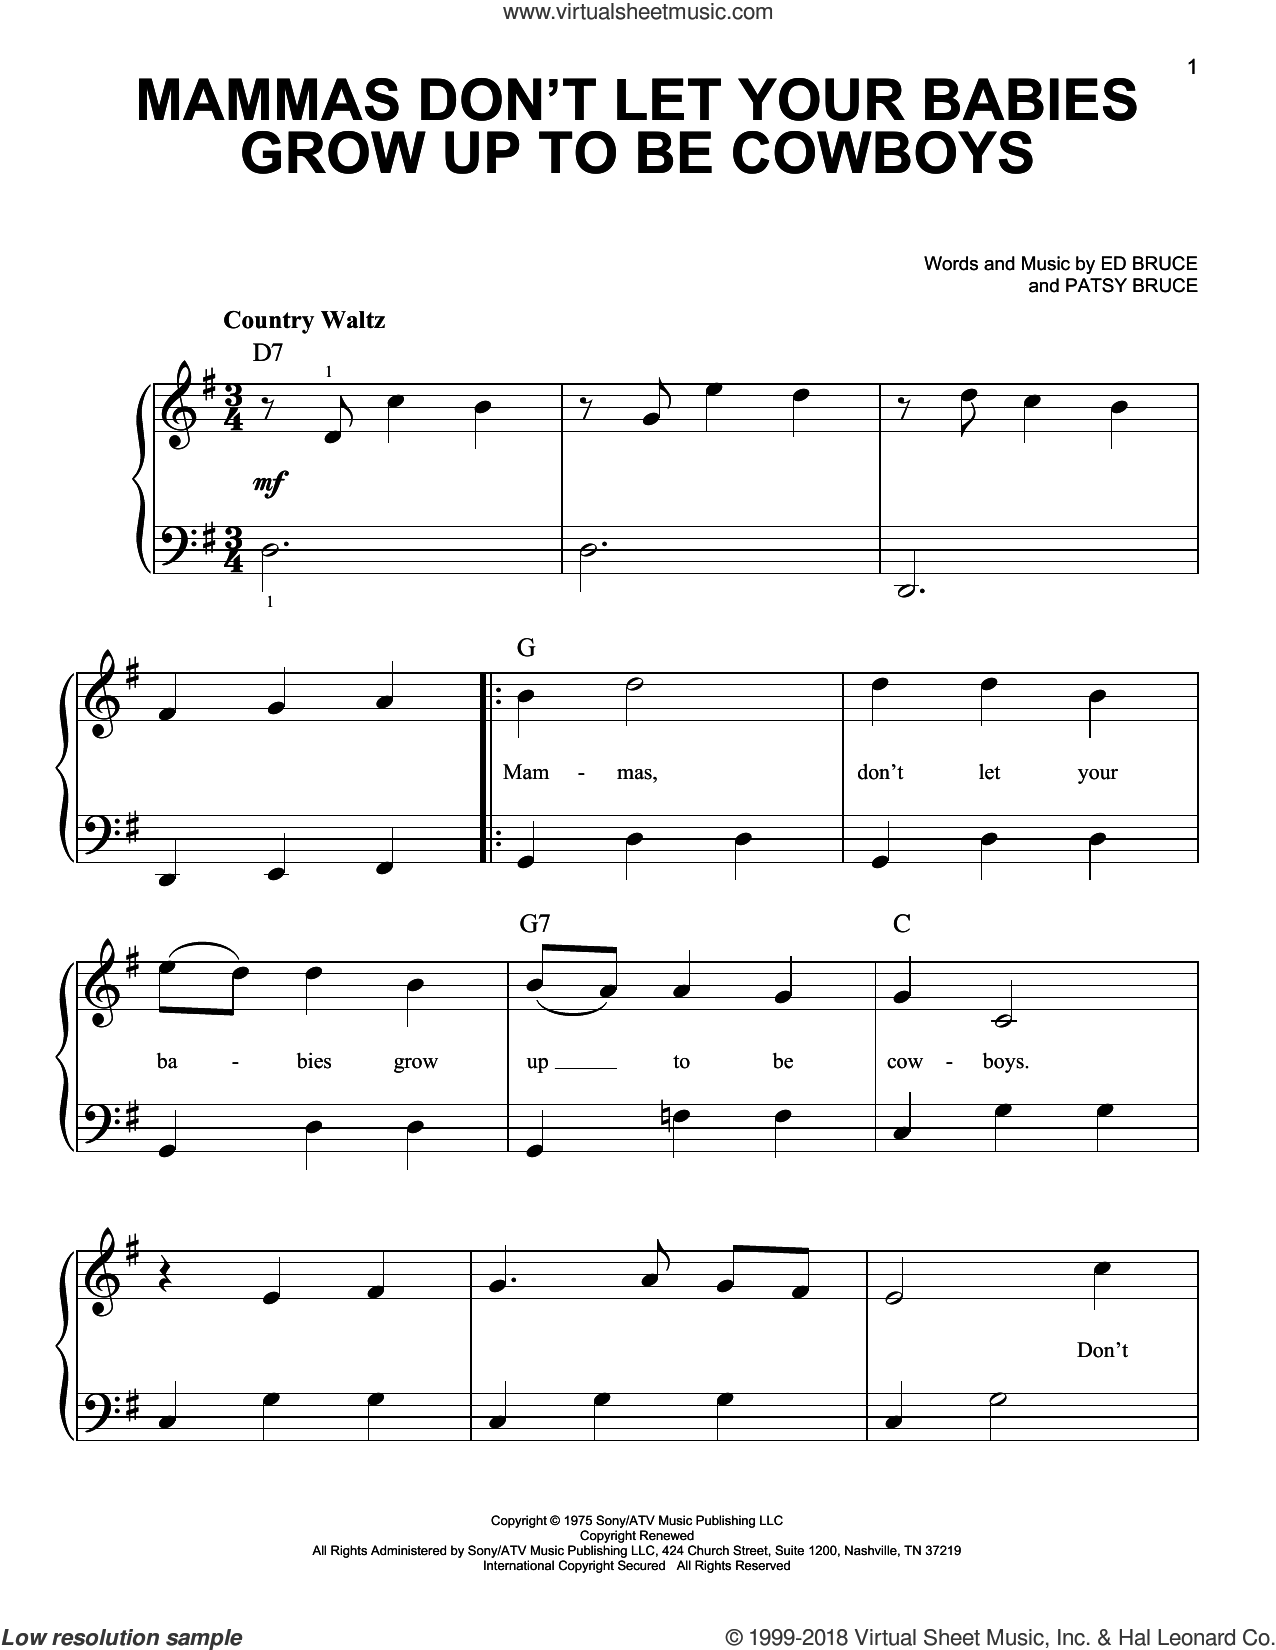 Mammas Don't Let Your Babies Grow Up To Be Cowboys sheet music for piano solo by Willie Nelson, Waylon Jennings, Ed Bruce and Patsy Bruce, beginner skill level